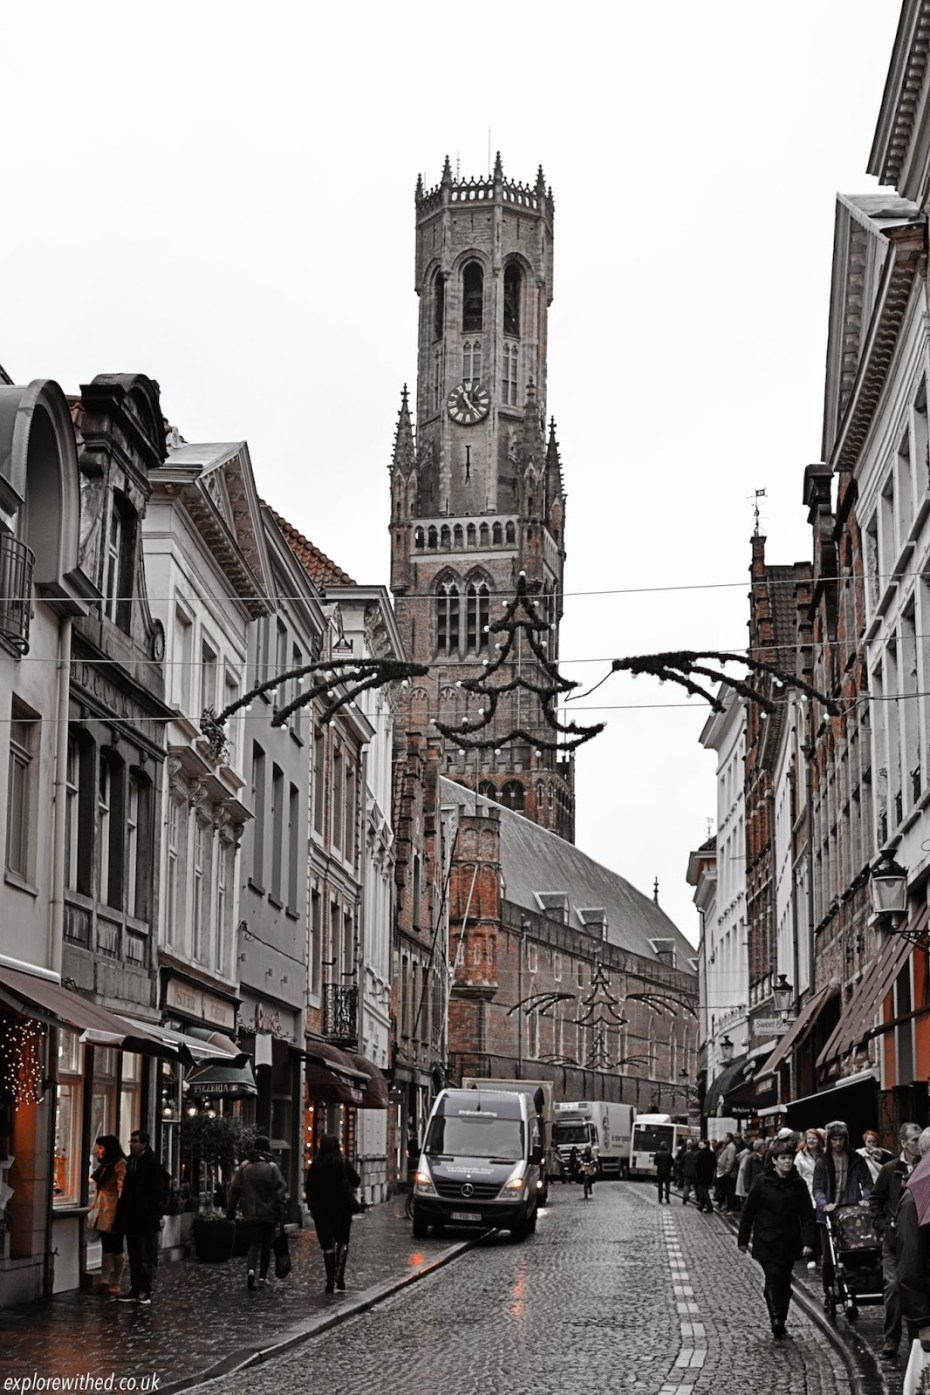 Typical street in Bruges during Christmastime